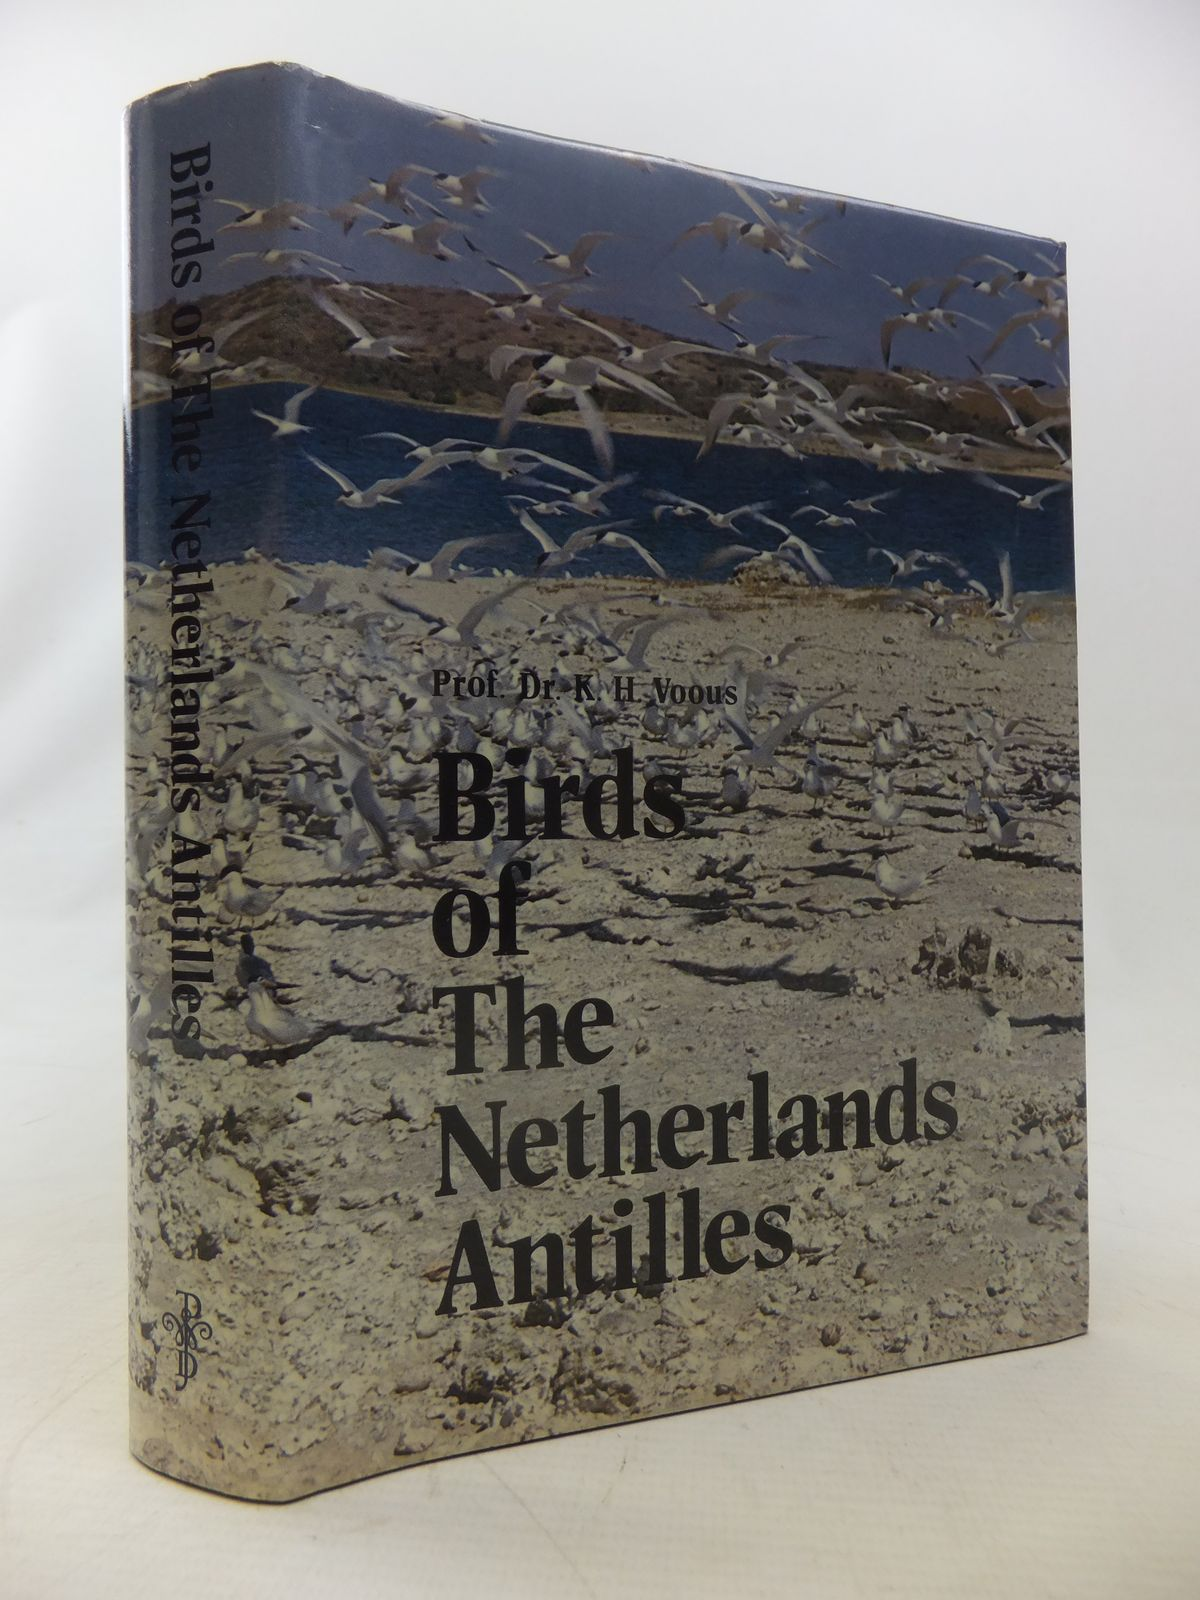 Photo of BIRDS OF THE NETHERLANDS ANTILLES written by Voous, K.H. published by De Walburg Pers (STOCK CODE: 1811057)  for sale by Stella & Rose's Books